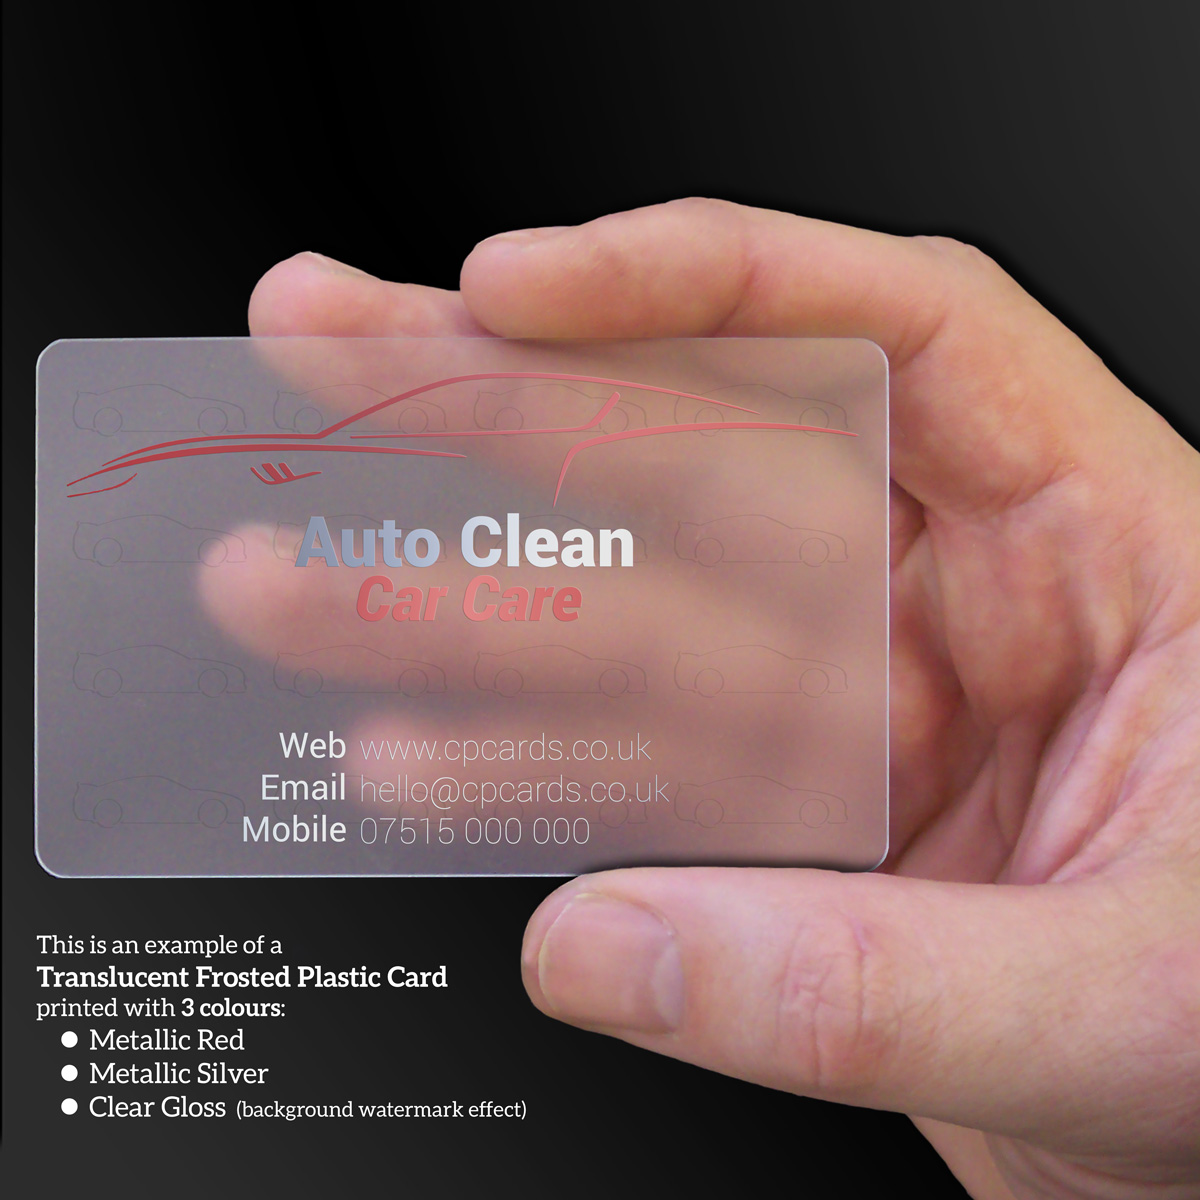 Translucent business card examples cpcards auto clean car care frosted translucent clear plastic business cards reheart Gallery